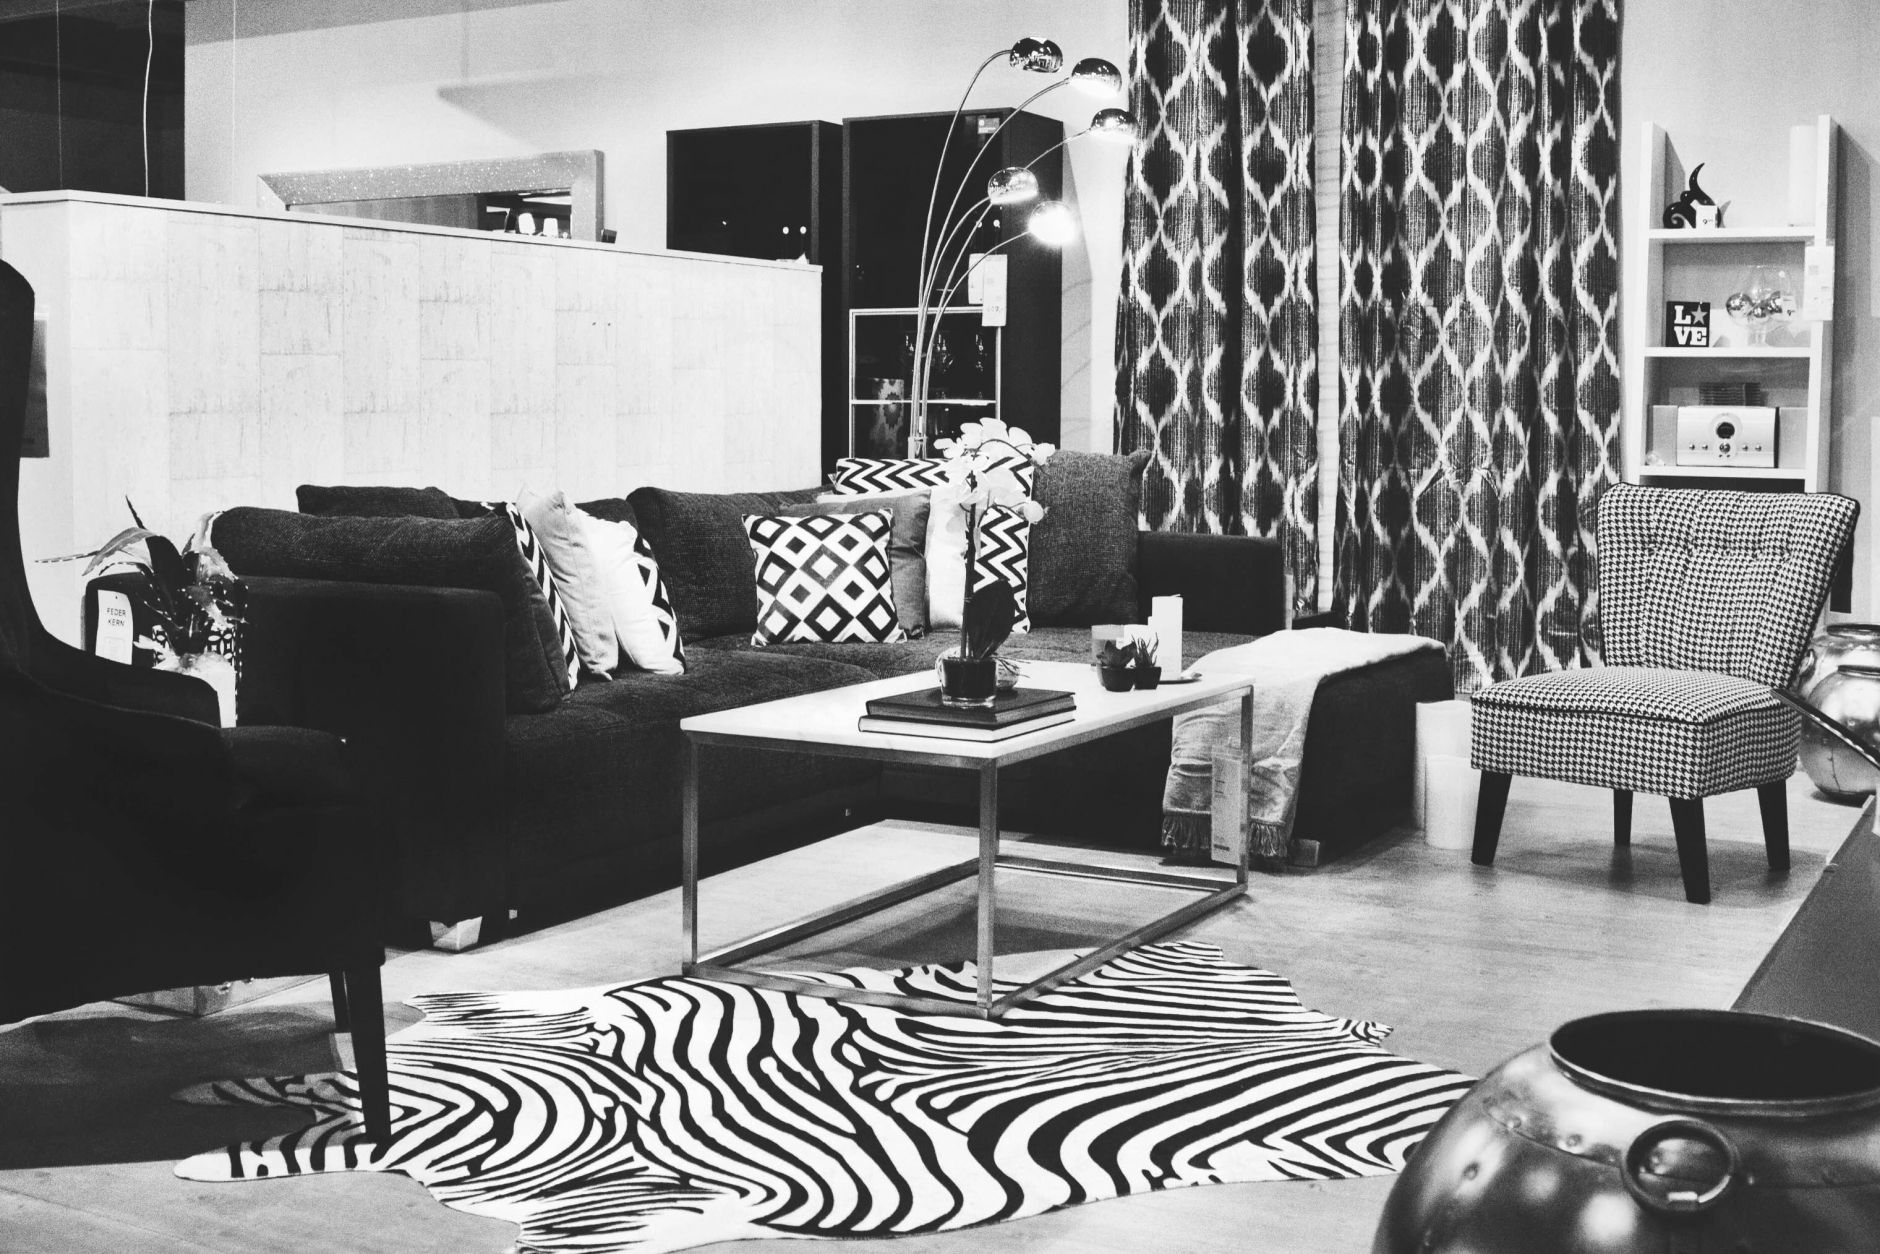 14-moemax-austria-edisa-shahini-disicouture-interior-black-white-grey-decoration